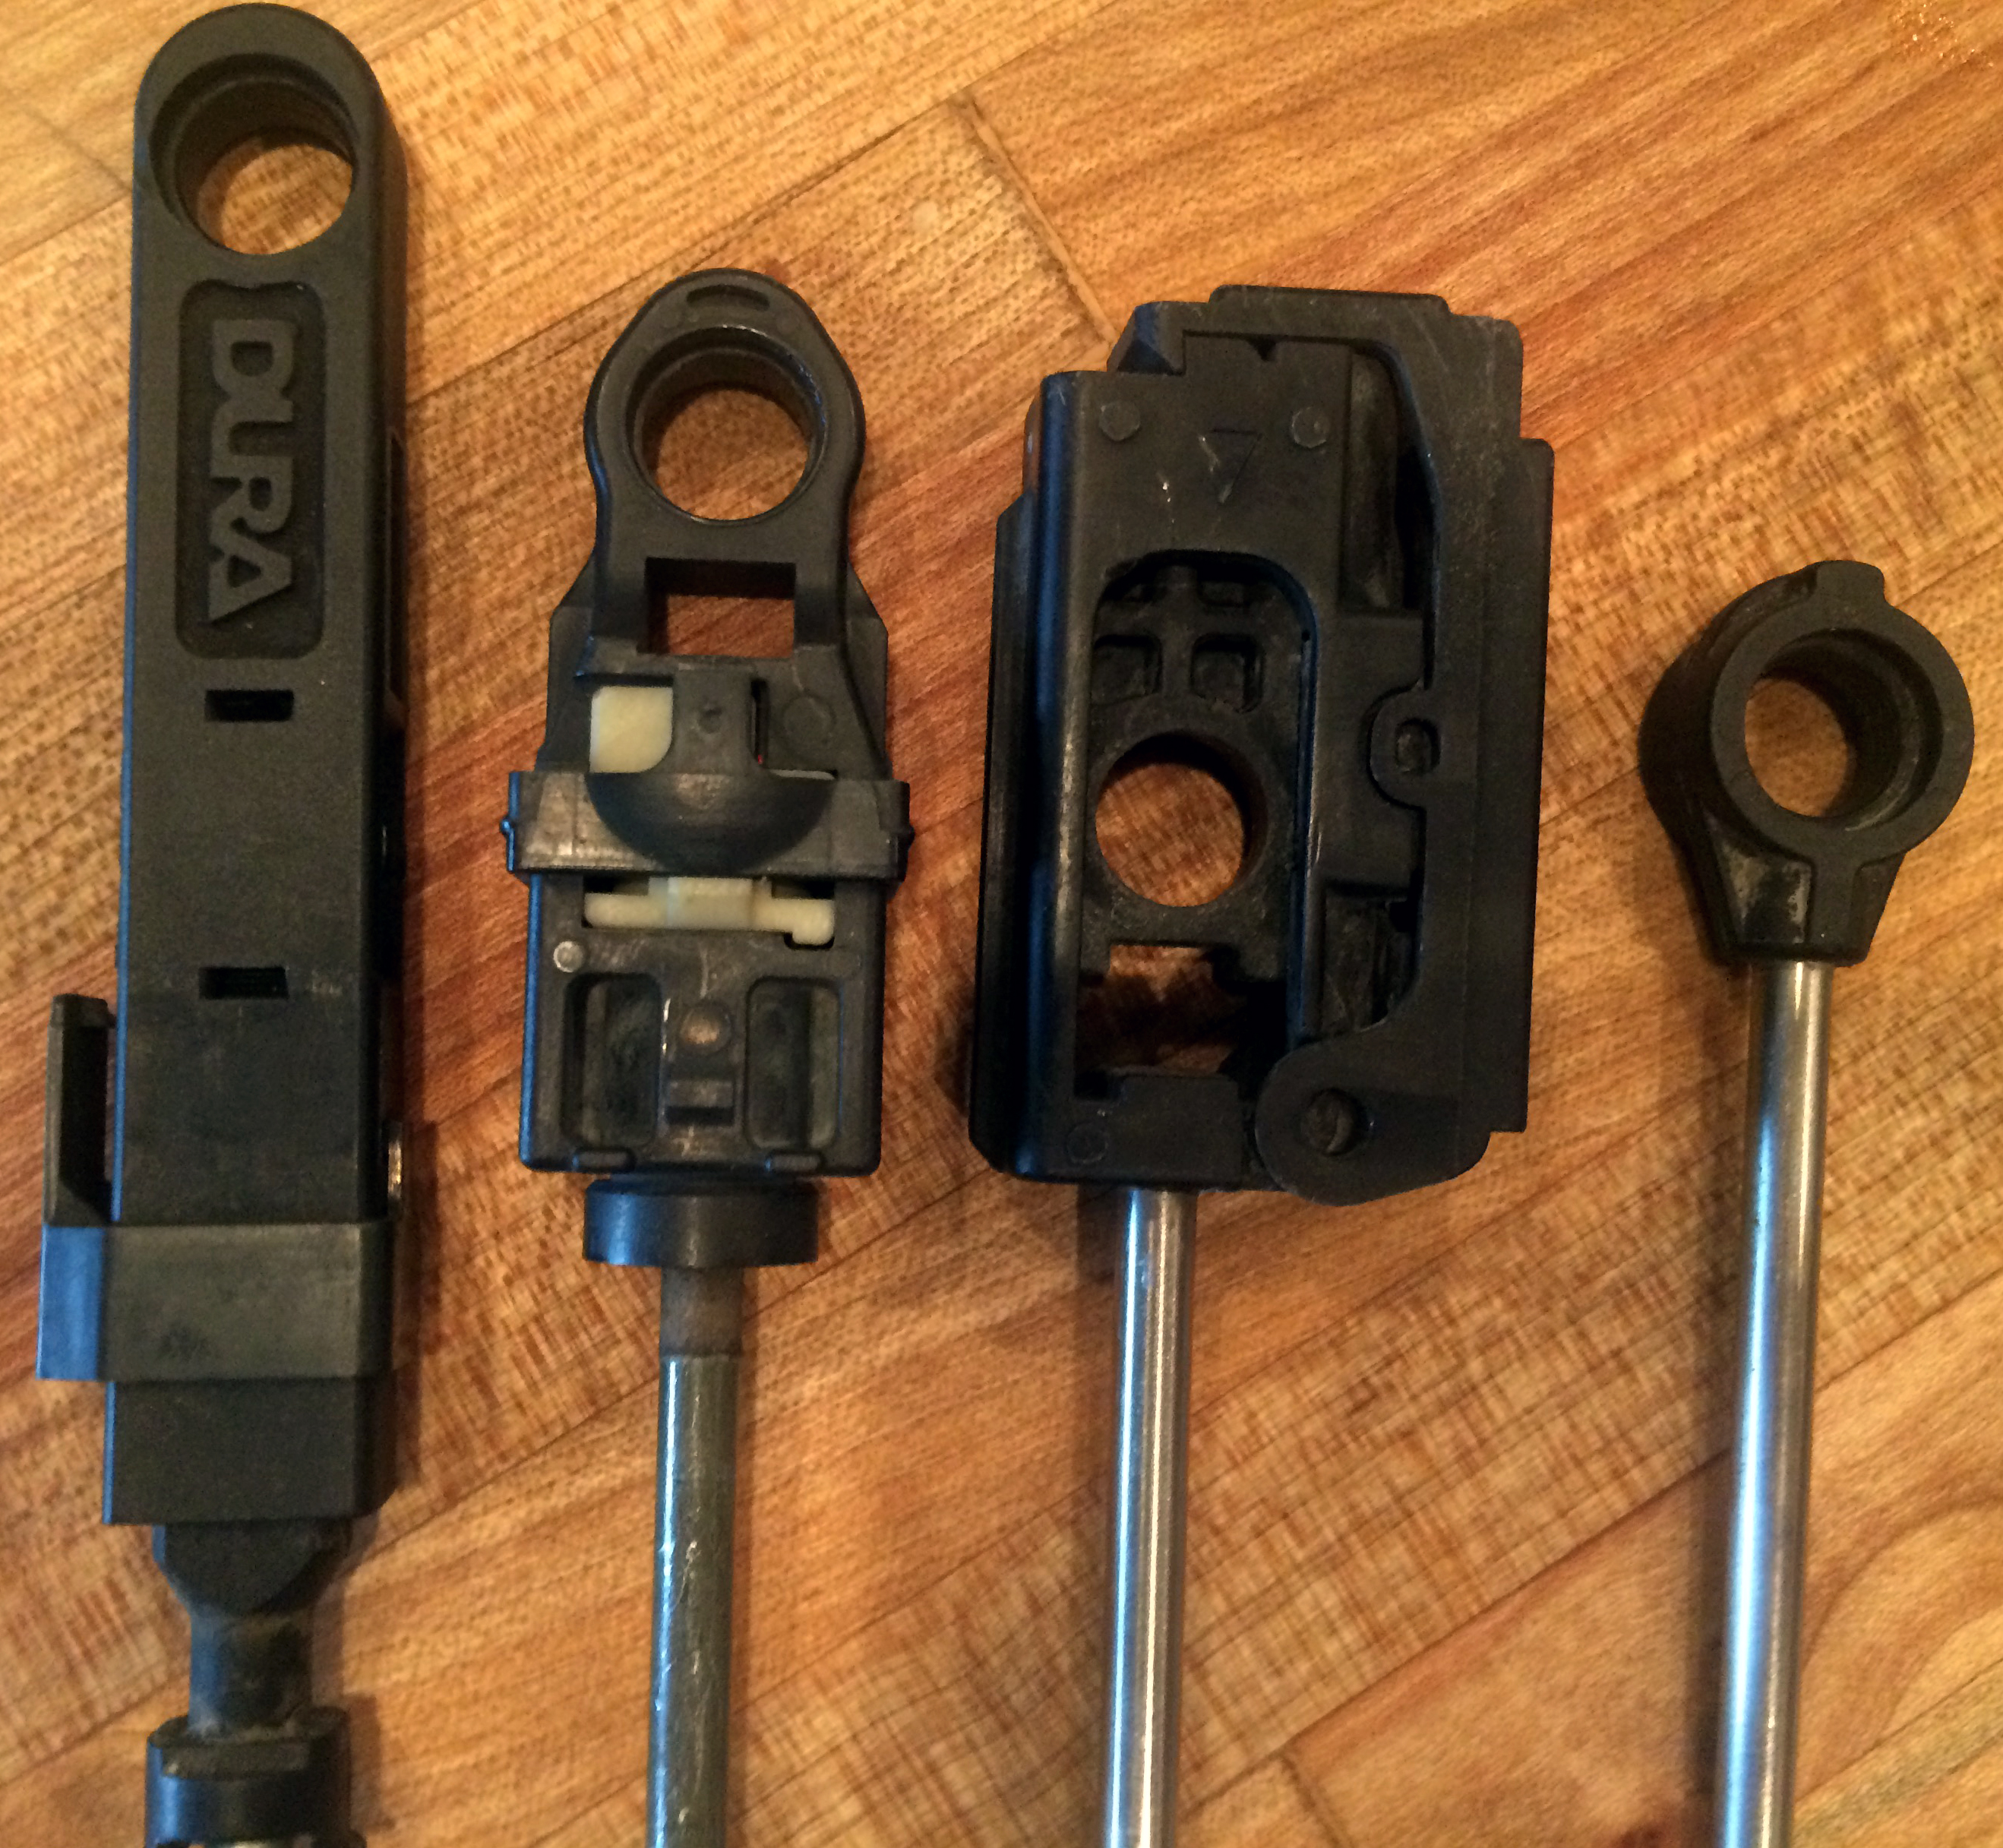 tb1kit-cable-ends-copy.jpg